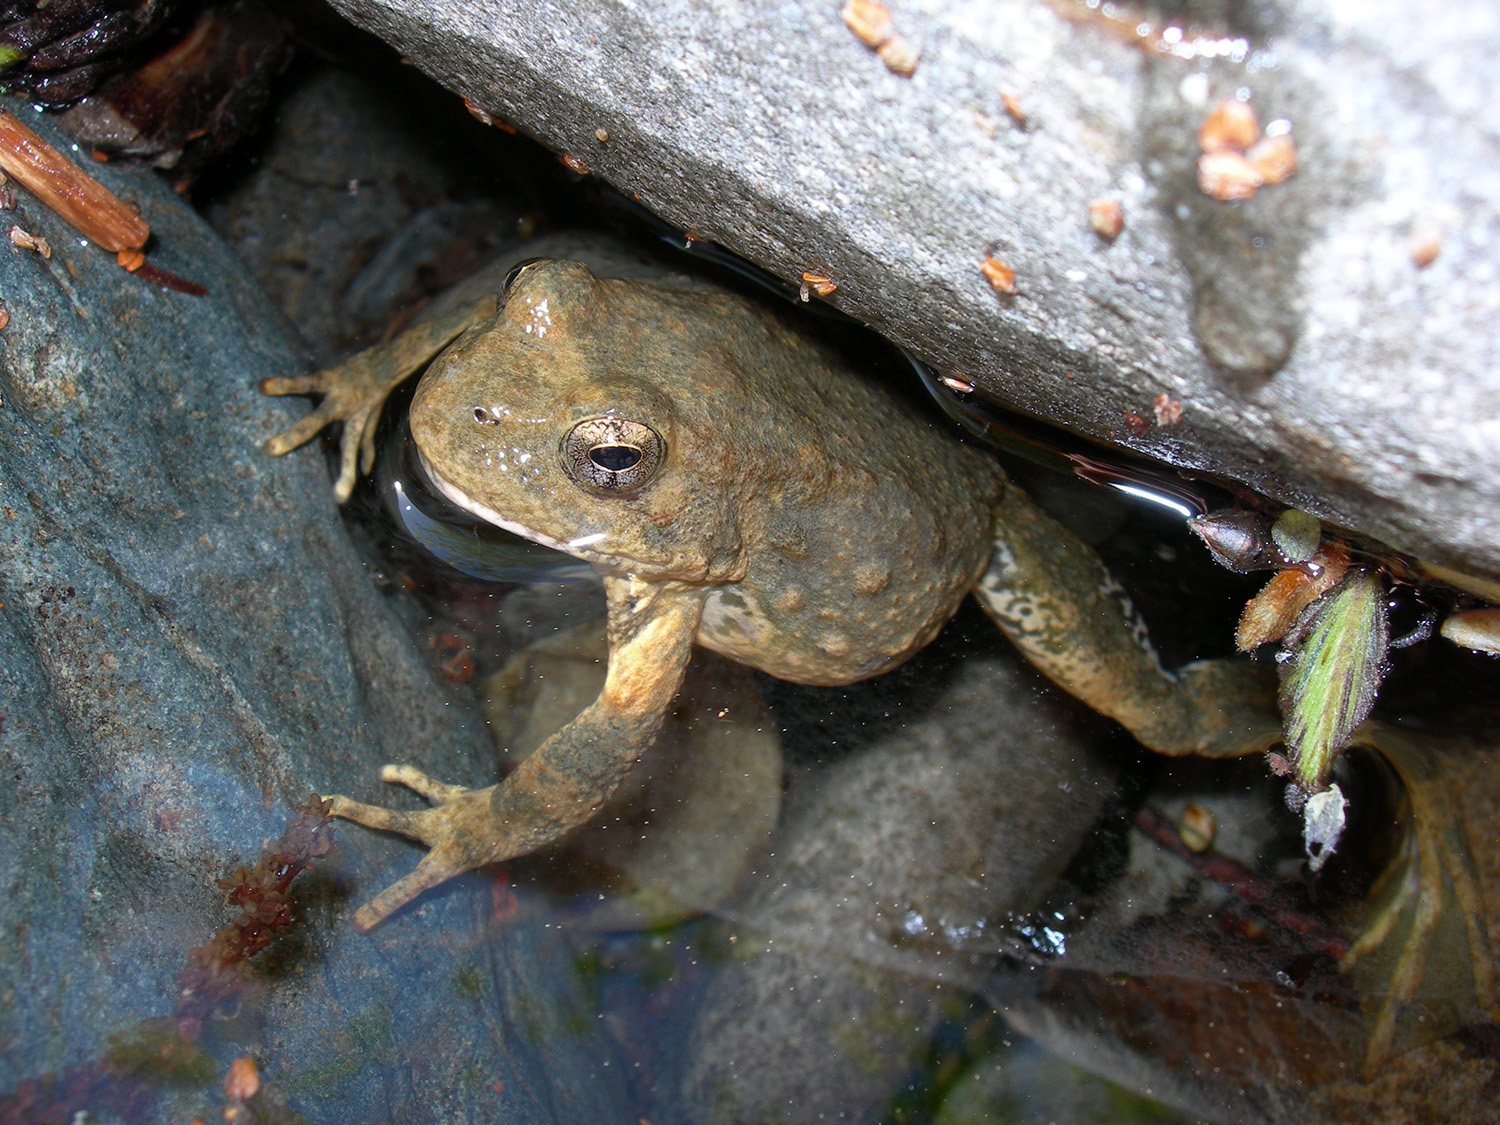 The foothill yellow-legged frog breeds exclusively in streams and prefers warm stream edges. Photo by Amy Lind, U.S. Forest Service.